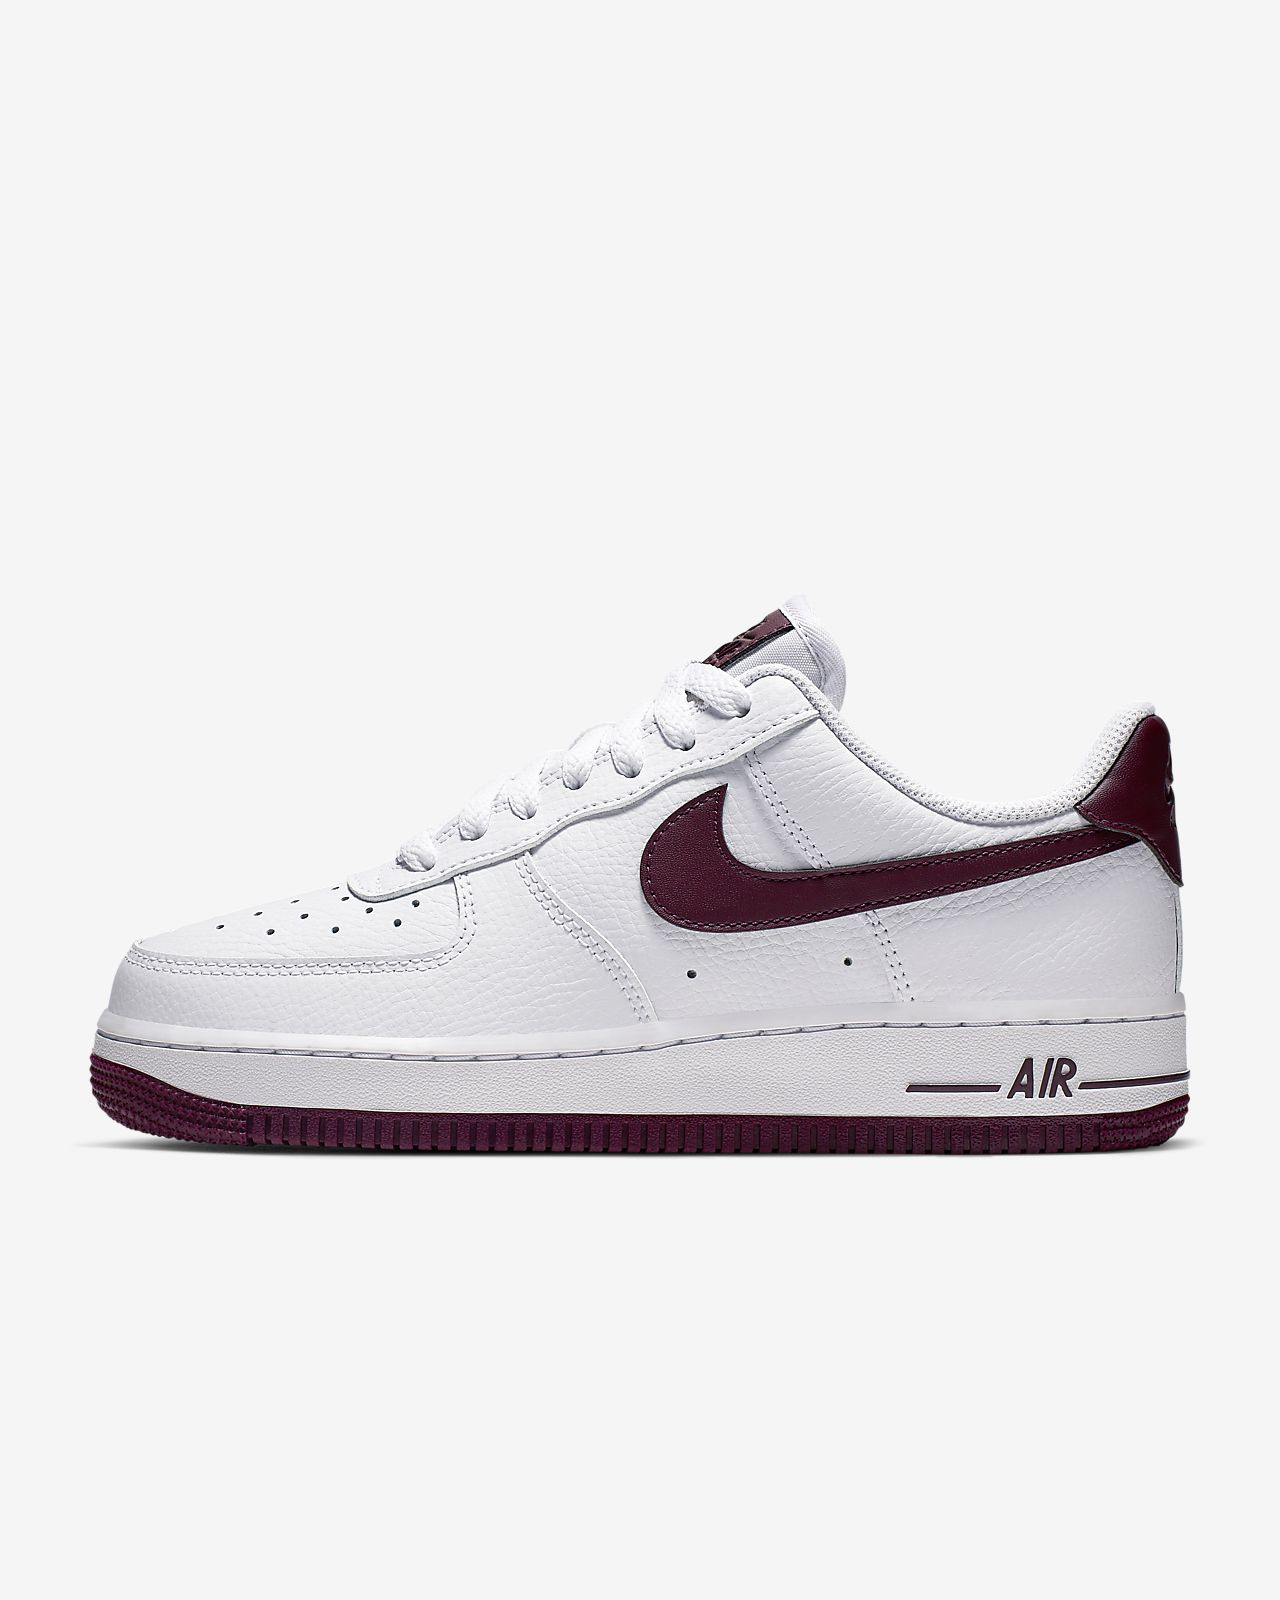 wholesale dealer 44f0e 0b756 ... Sko Nike Air Force 1  07 Patent för kvinnor